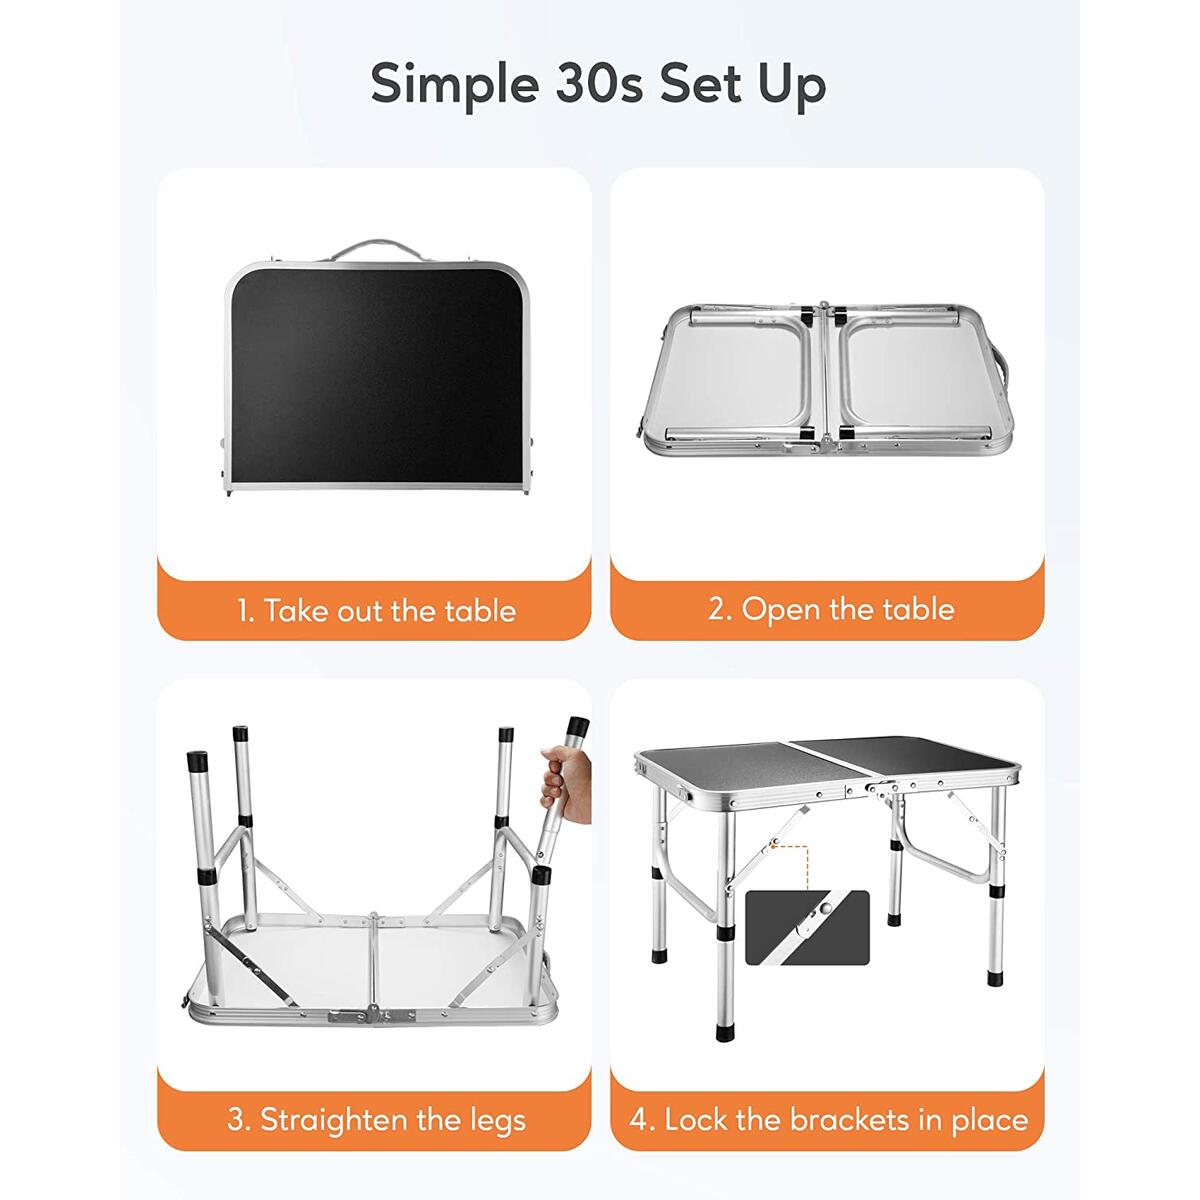 FiveJoy Adjustable Camping Table, Folding Portable Lightweight Aluminum Roll Up Top Weatherproof and Rust Resistant Table for Outdoor Picnic Cooking Beach Backyard, 23.6